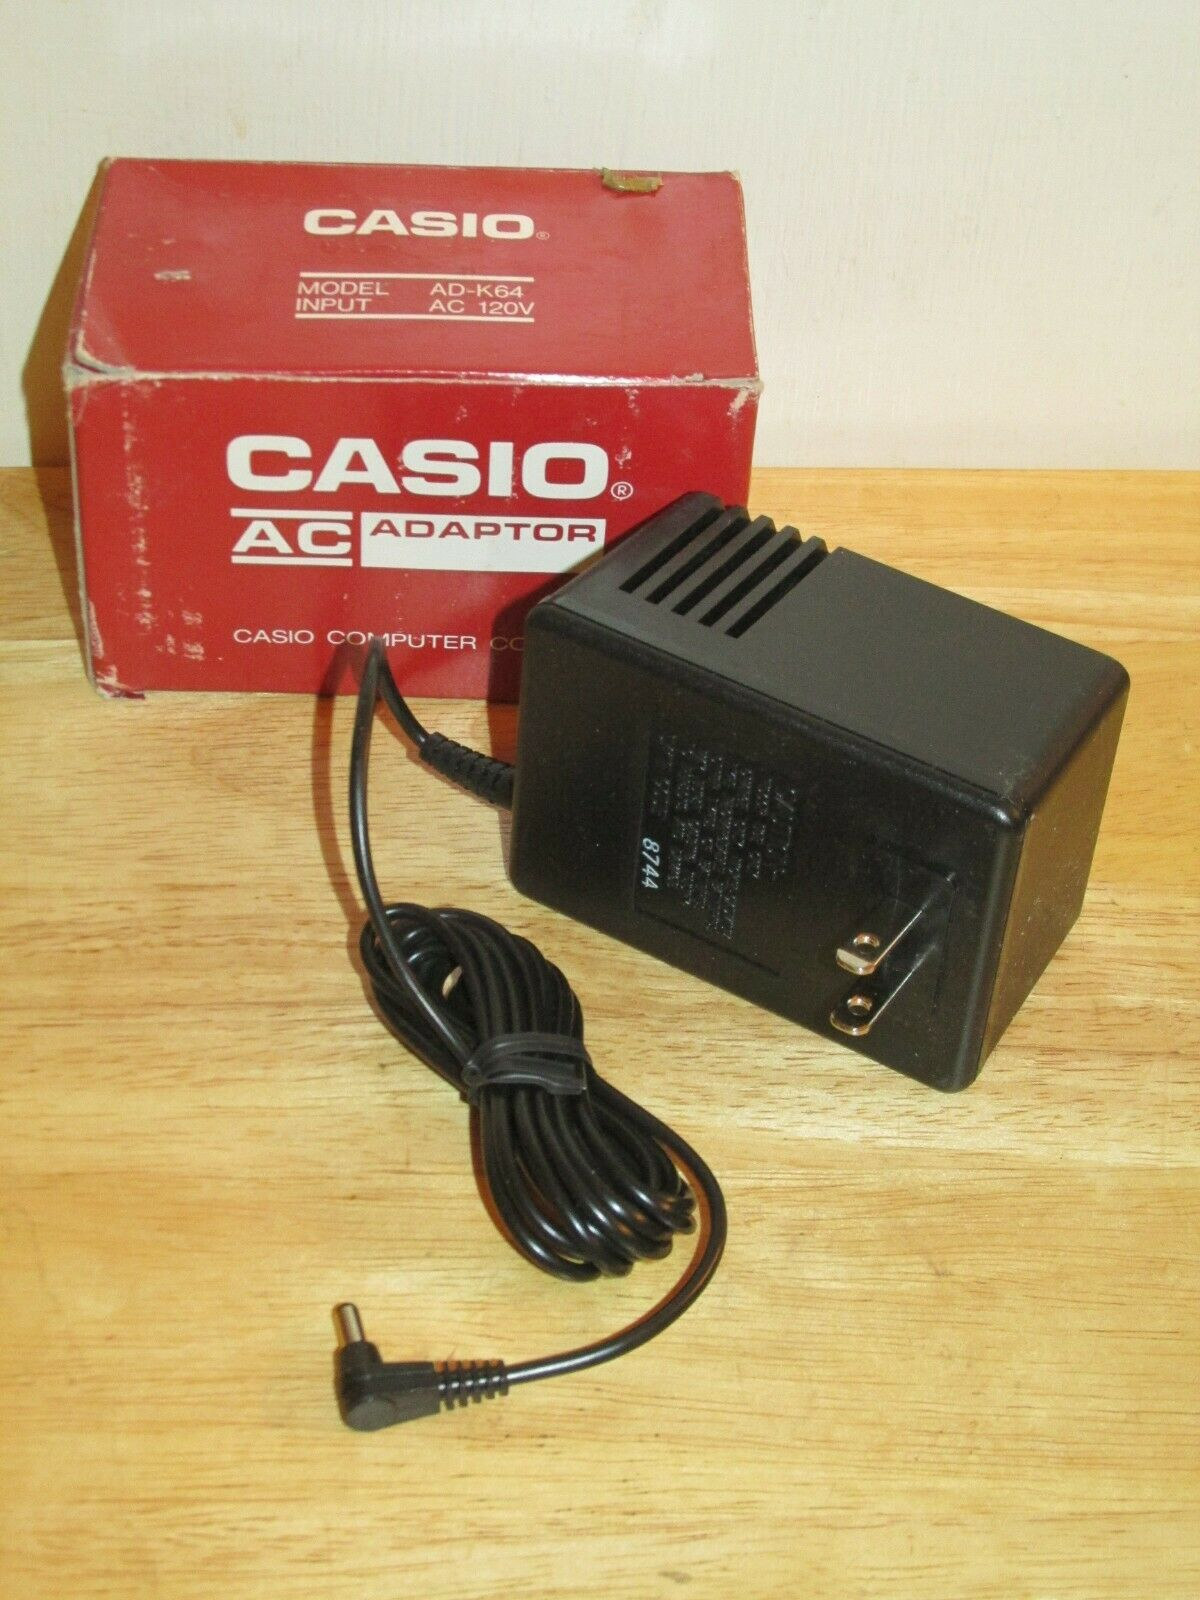 Genuine CASIO AD-K64 Power Supply/AC Adapter Output 6VDC 800mA - NEW in Box!